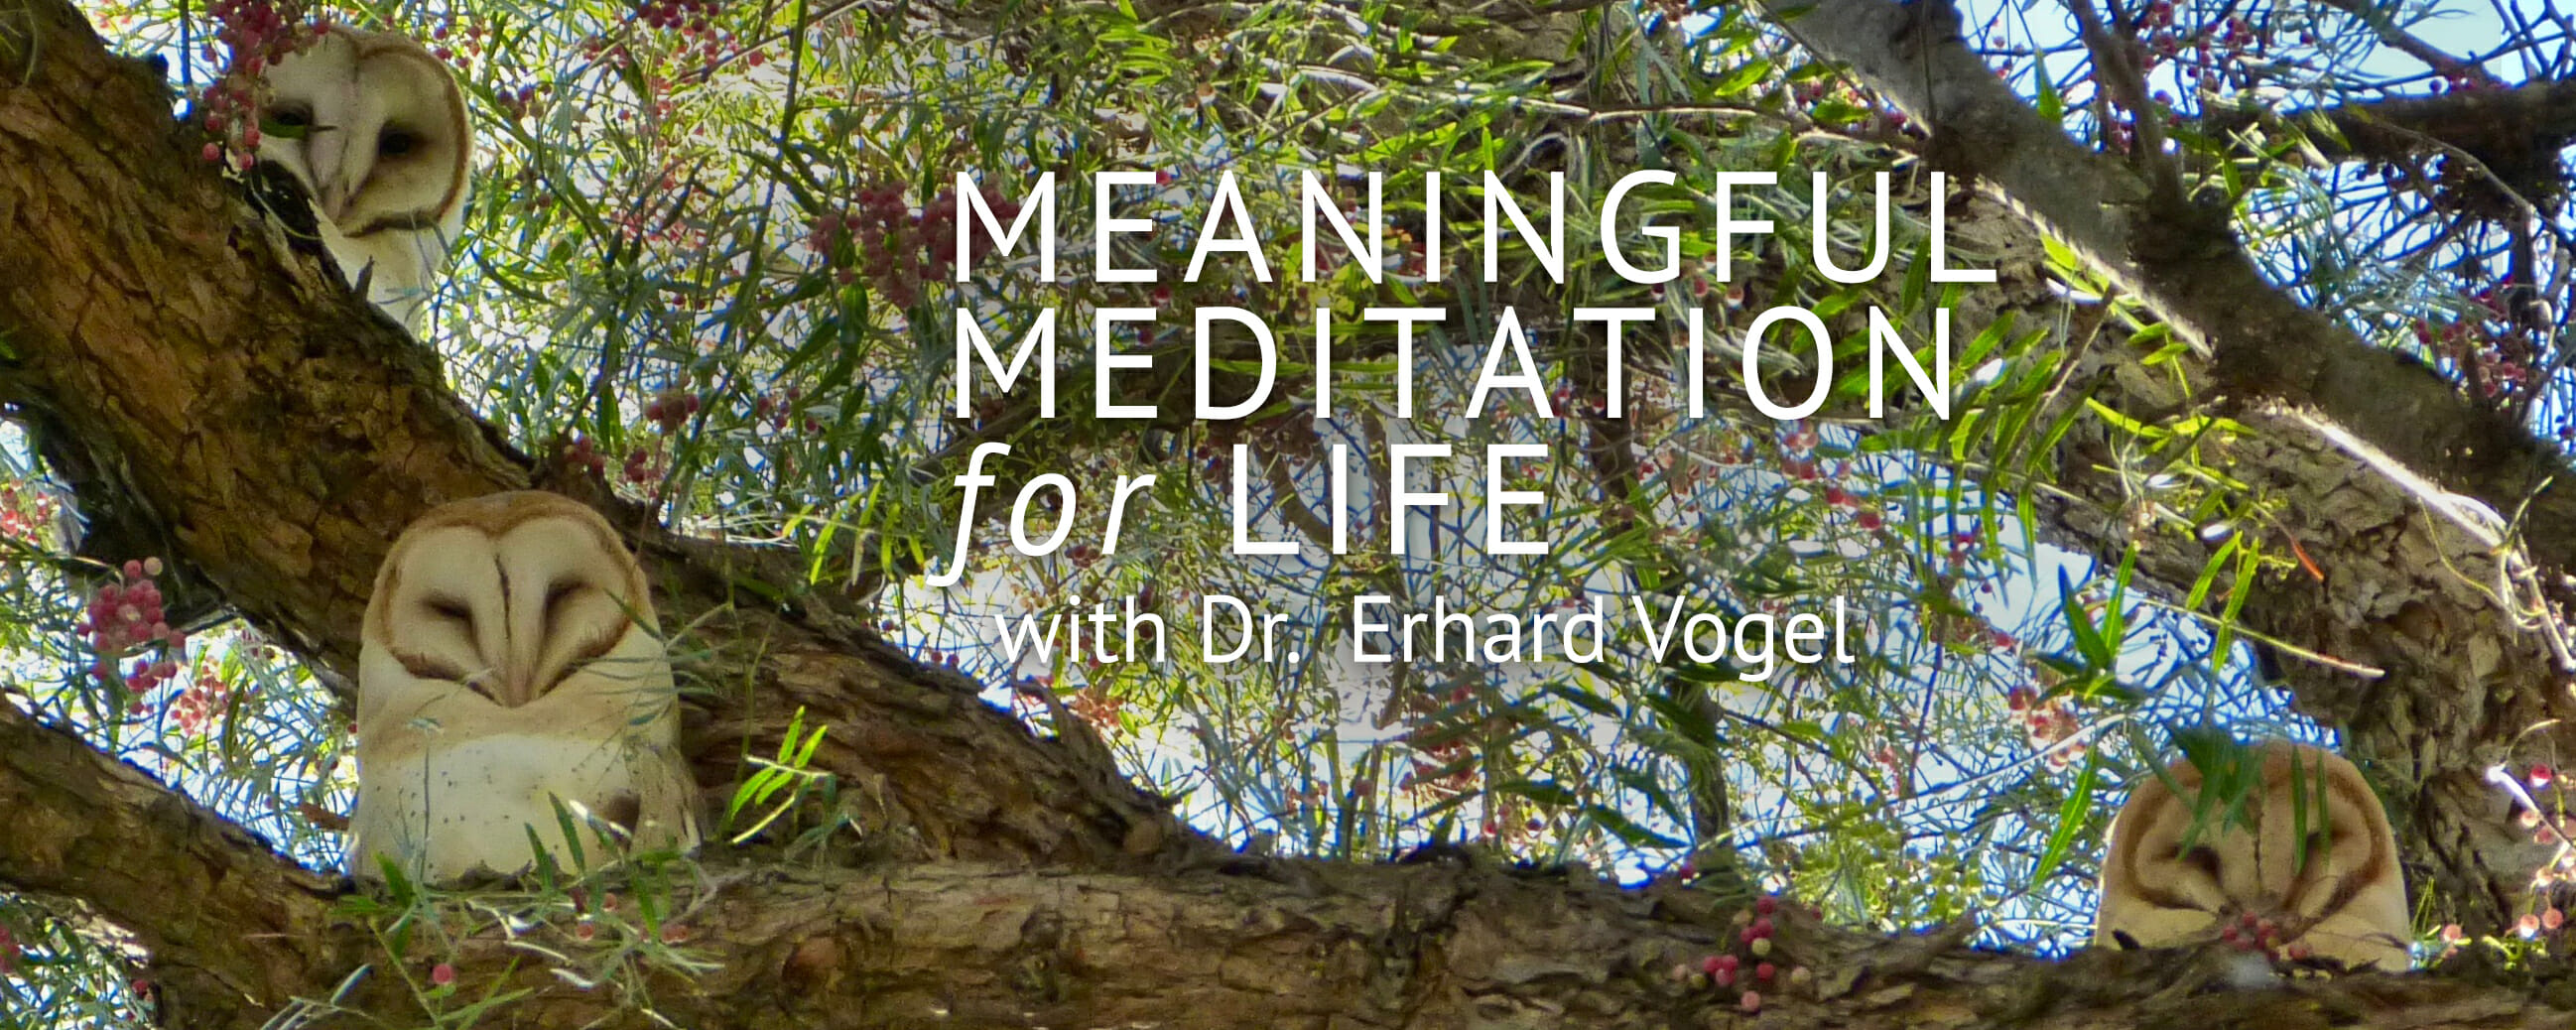 Meaningful Mediation for Life with Dr. Erhard Vogel | Web Talk Radio